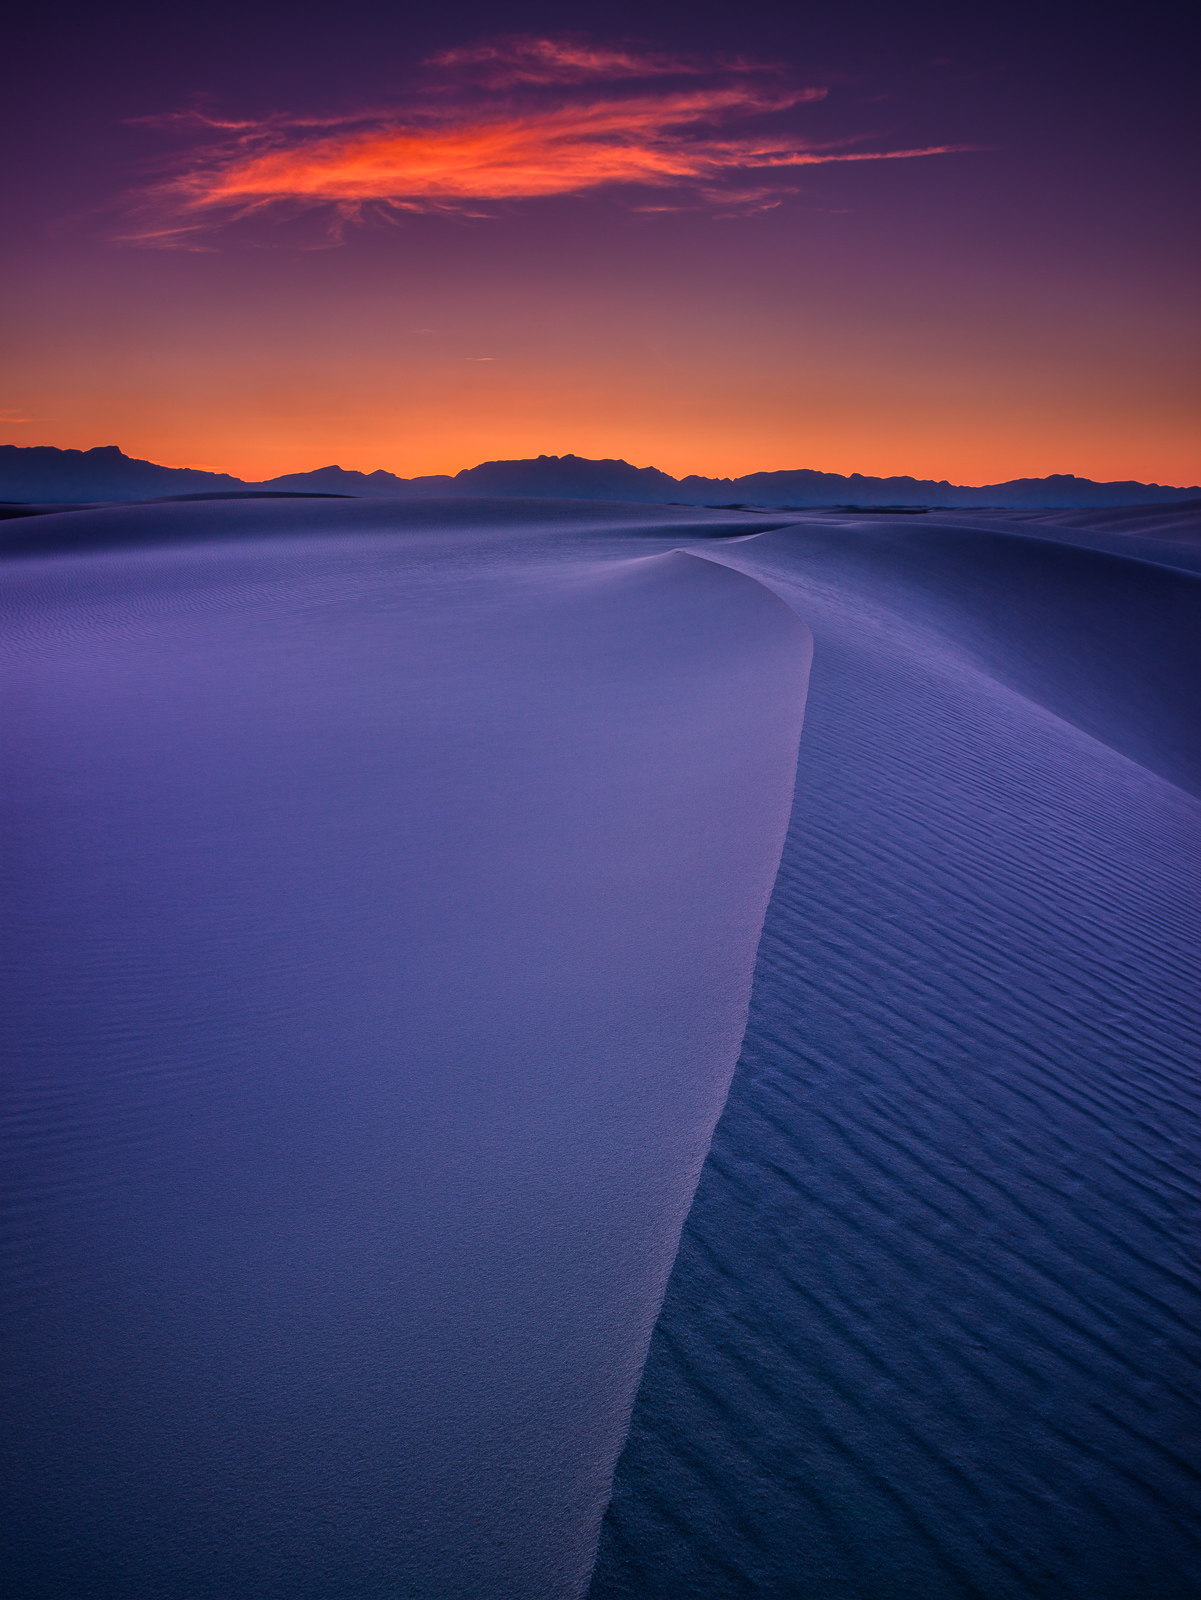 Sunset at White Sands National Monument, the largest  gypsum sand dunes in the world and site of incredible sunrises and sunsets...